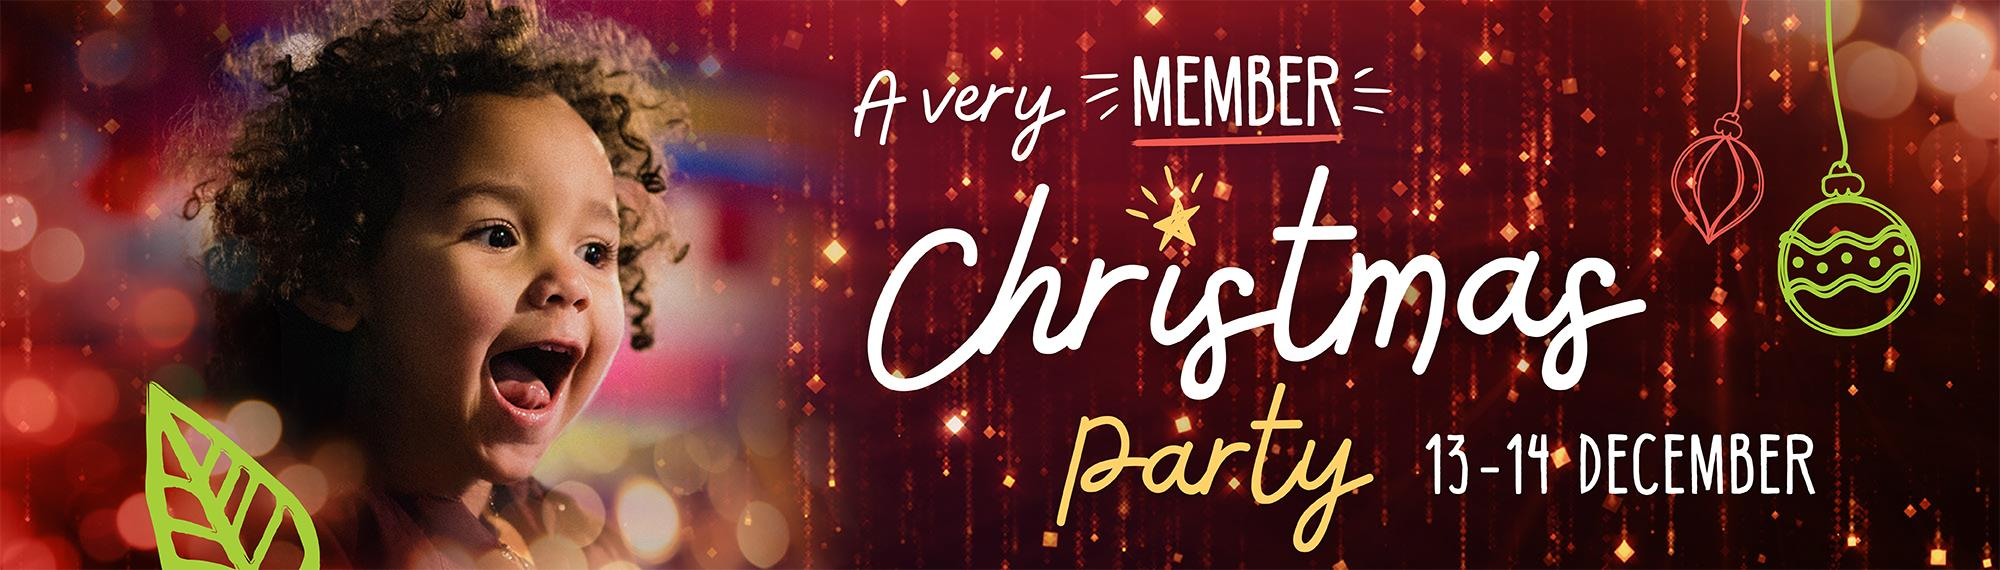 Sign: A very Member Christmas Party on the 13 & 14 of December. Photo of excited child.